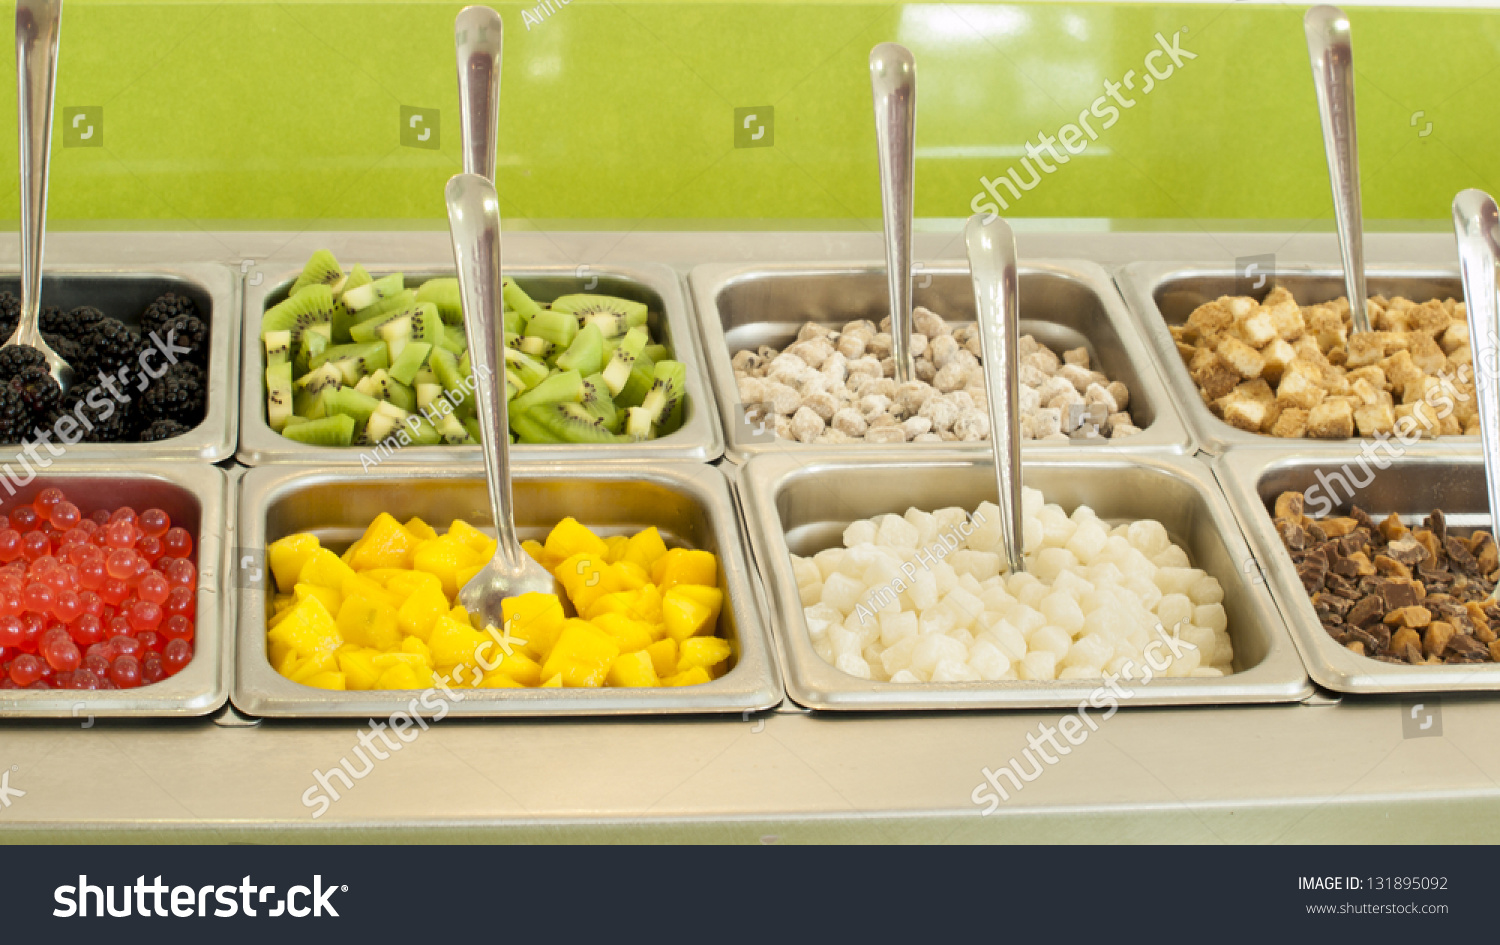 Frozen Yogurt Toppings Bar. Yogurt Toppings Ranging From Fresh